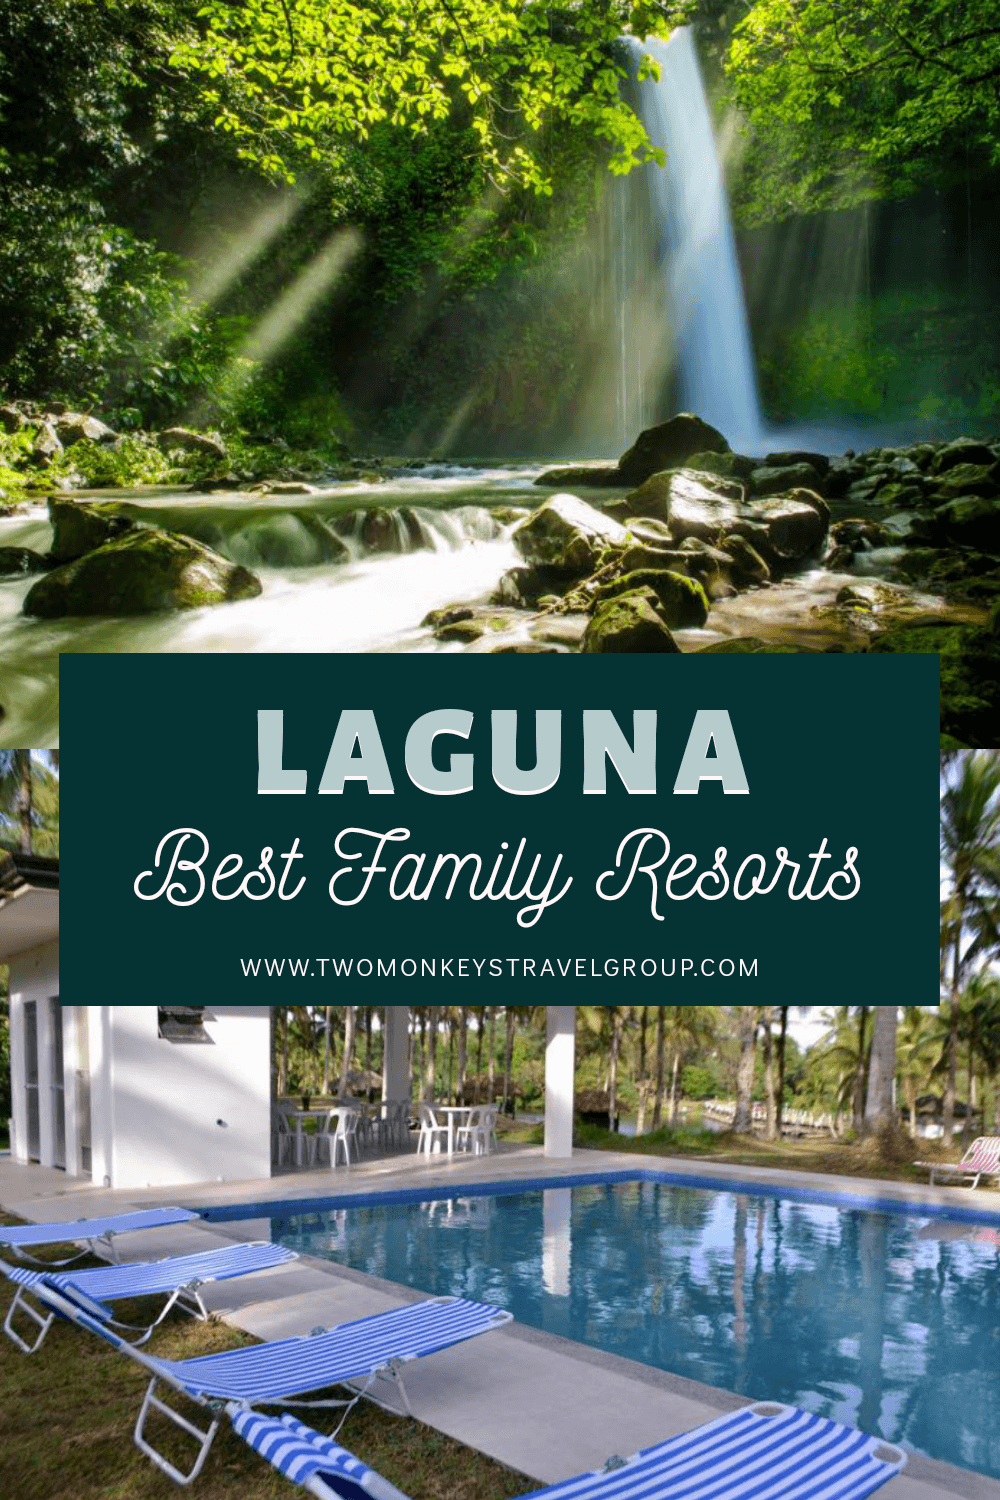 The 10 Best Family Resorts in Laguna, Philippines